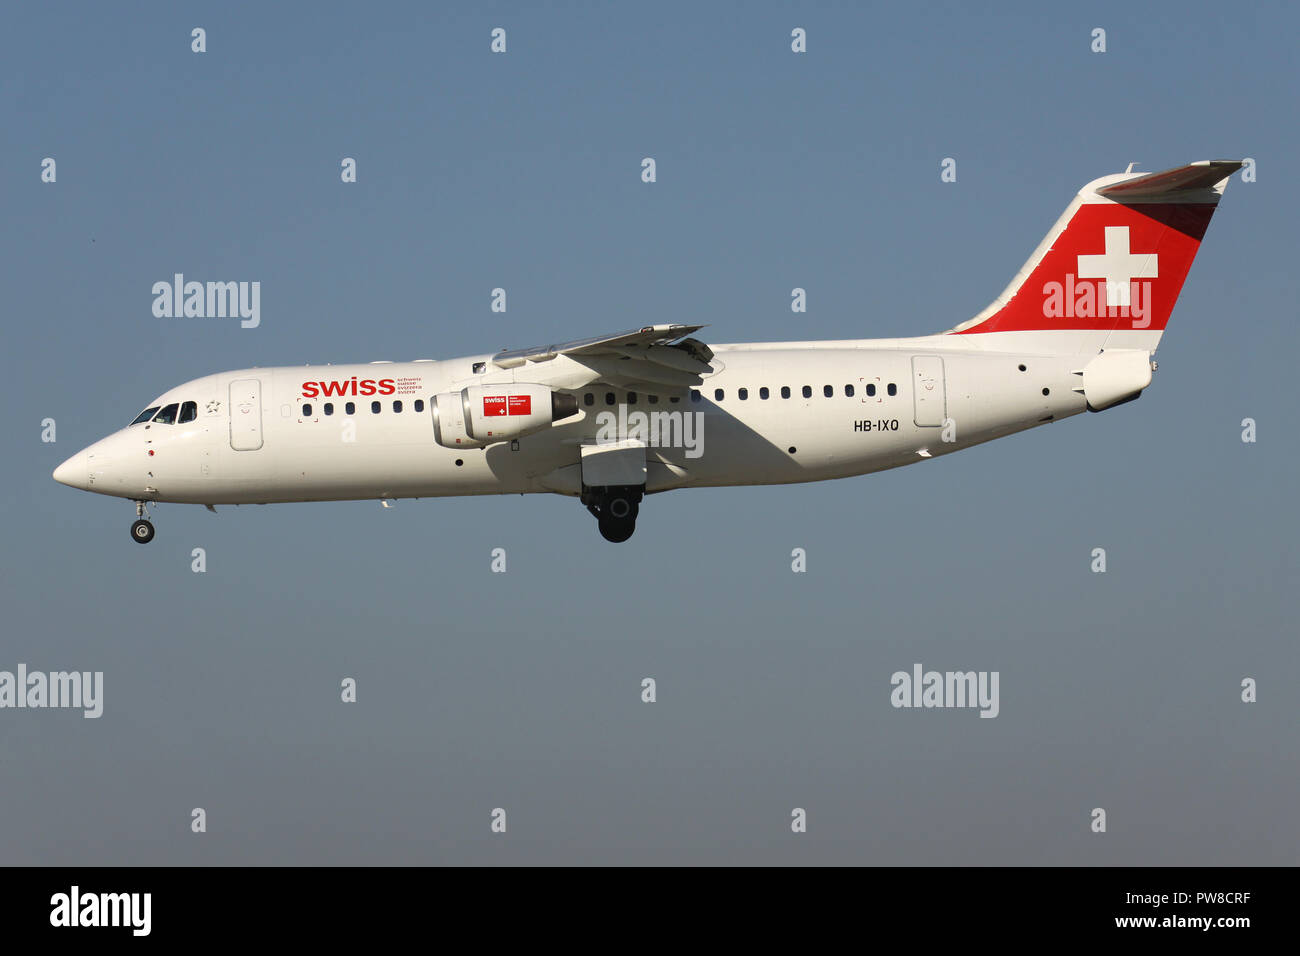 Swiss International Air Lines Avro RJ100 (old livery) with registration HB-IXQ on short final for runway 14 of Zurich Airport. Stock Photo